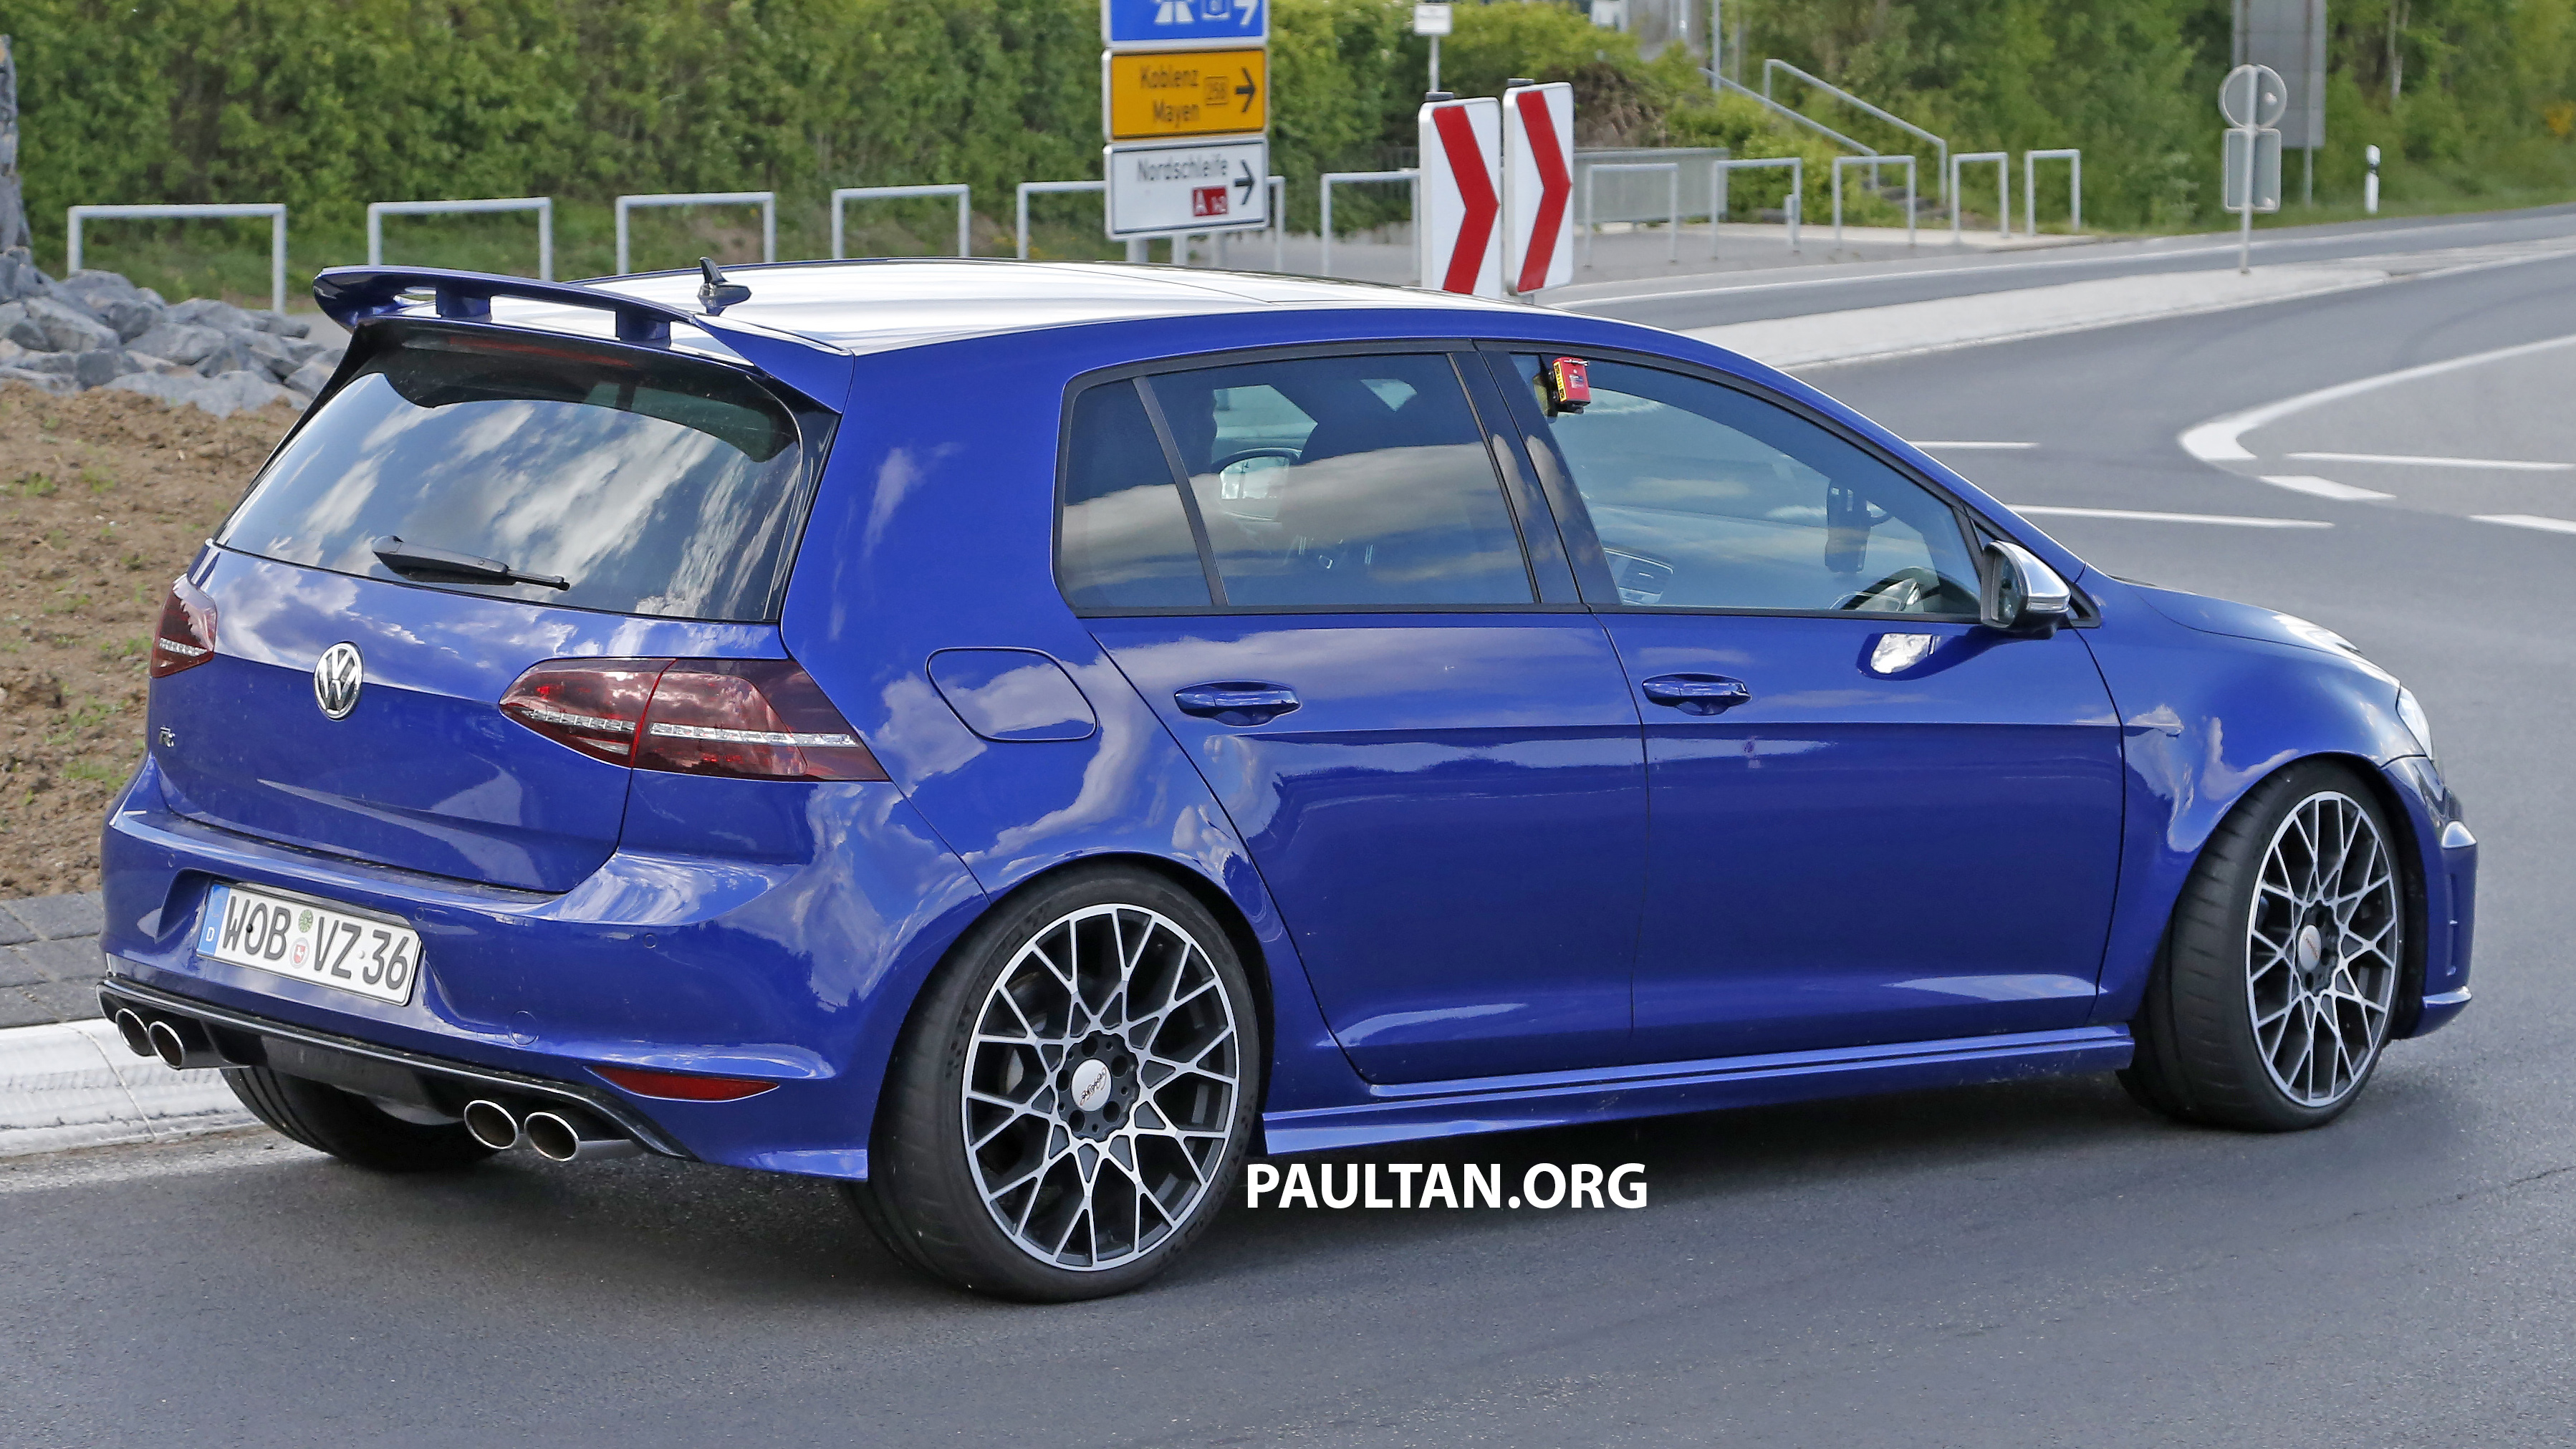 Golf R 400 >> SPIED: Volkswagen Golf R 400 caught at the 'Ring Paul Tan - Image 341133